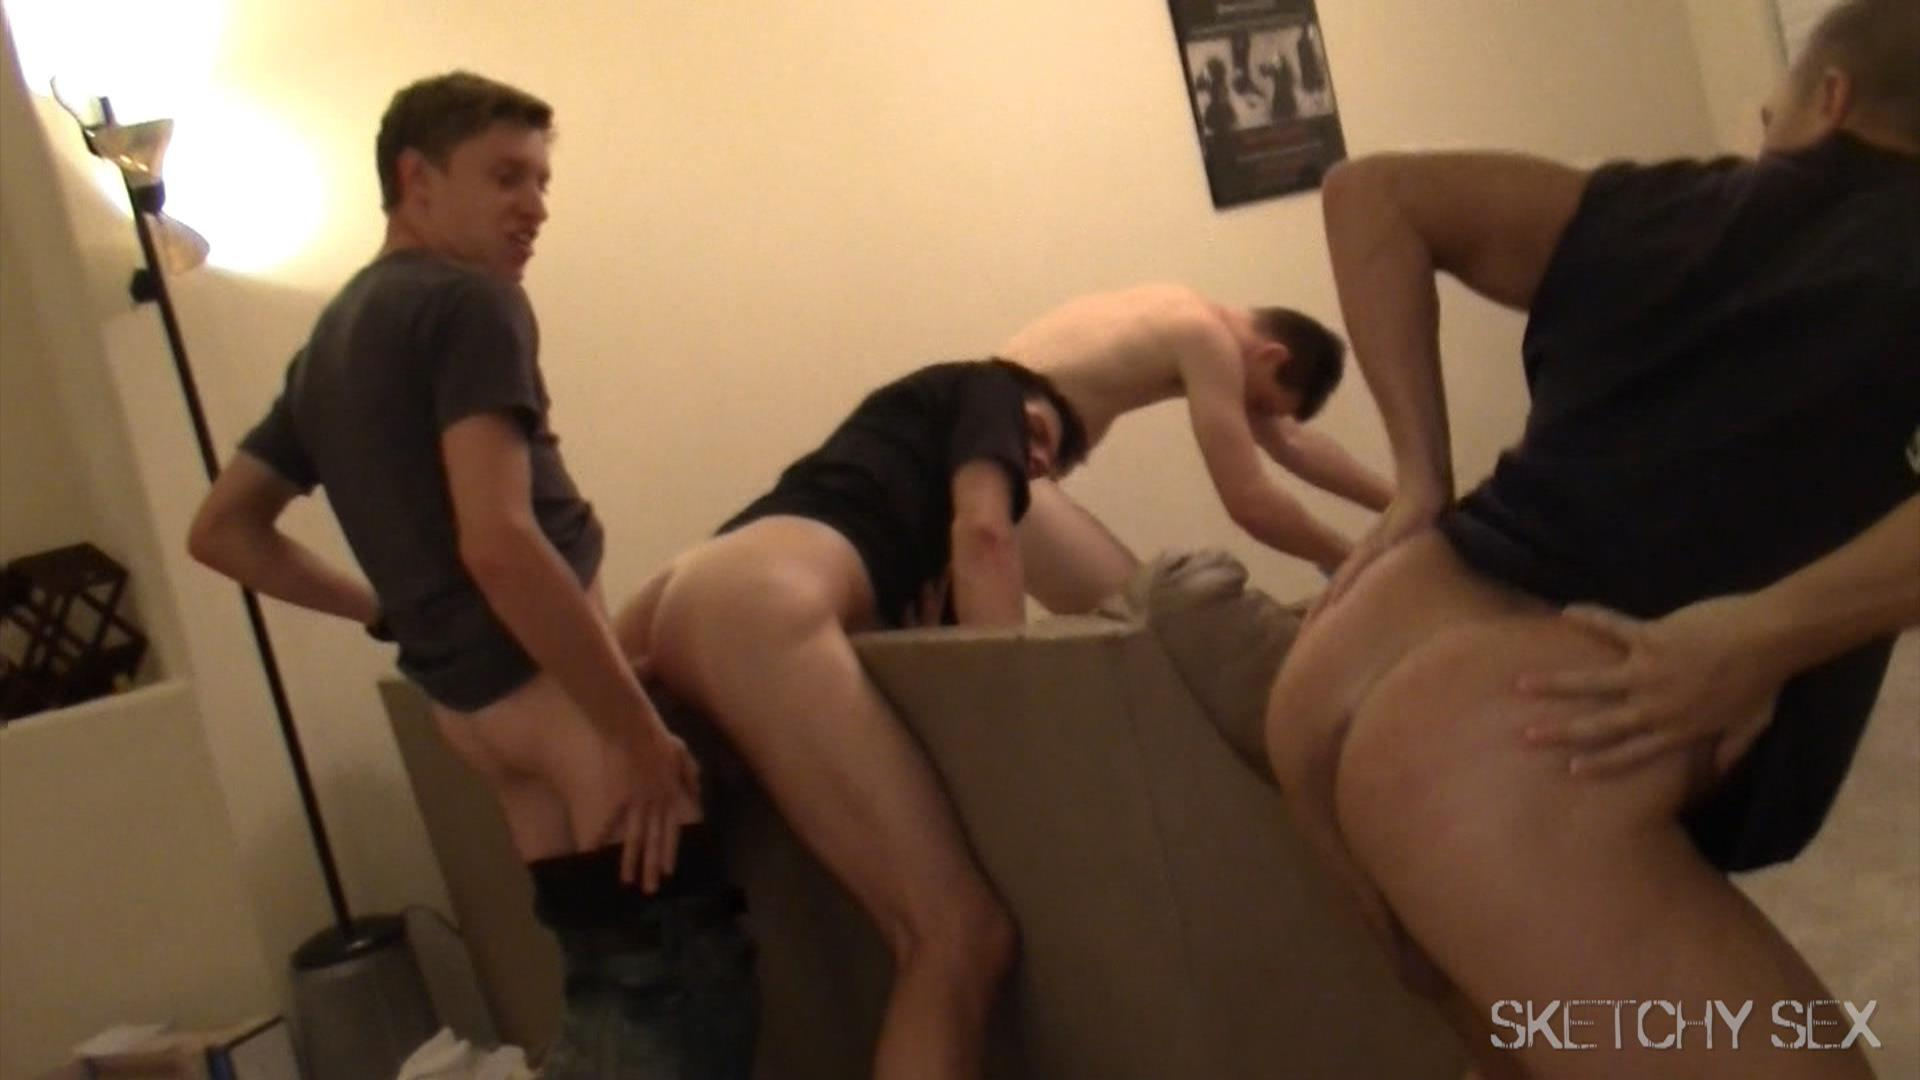 Sketchy Sex Anonymous Bareback Sex Party Big Dick Amateur Gay Porn 13 Getting Tag Teamed At A Bareback Anonymous Sex Encounter